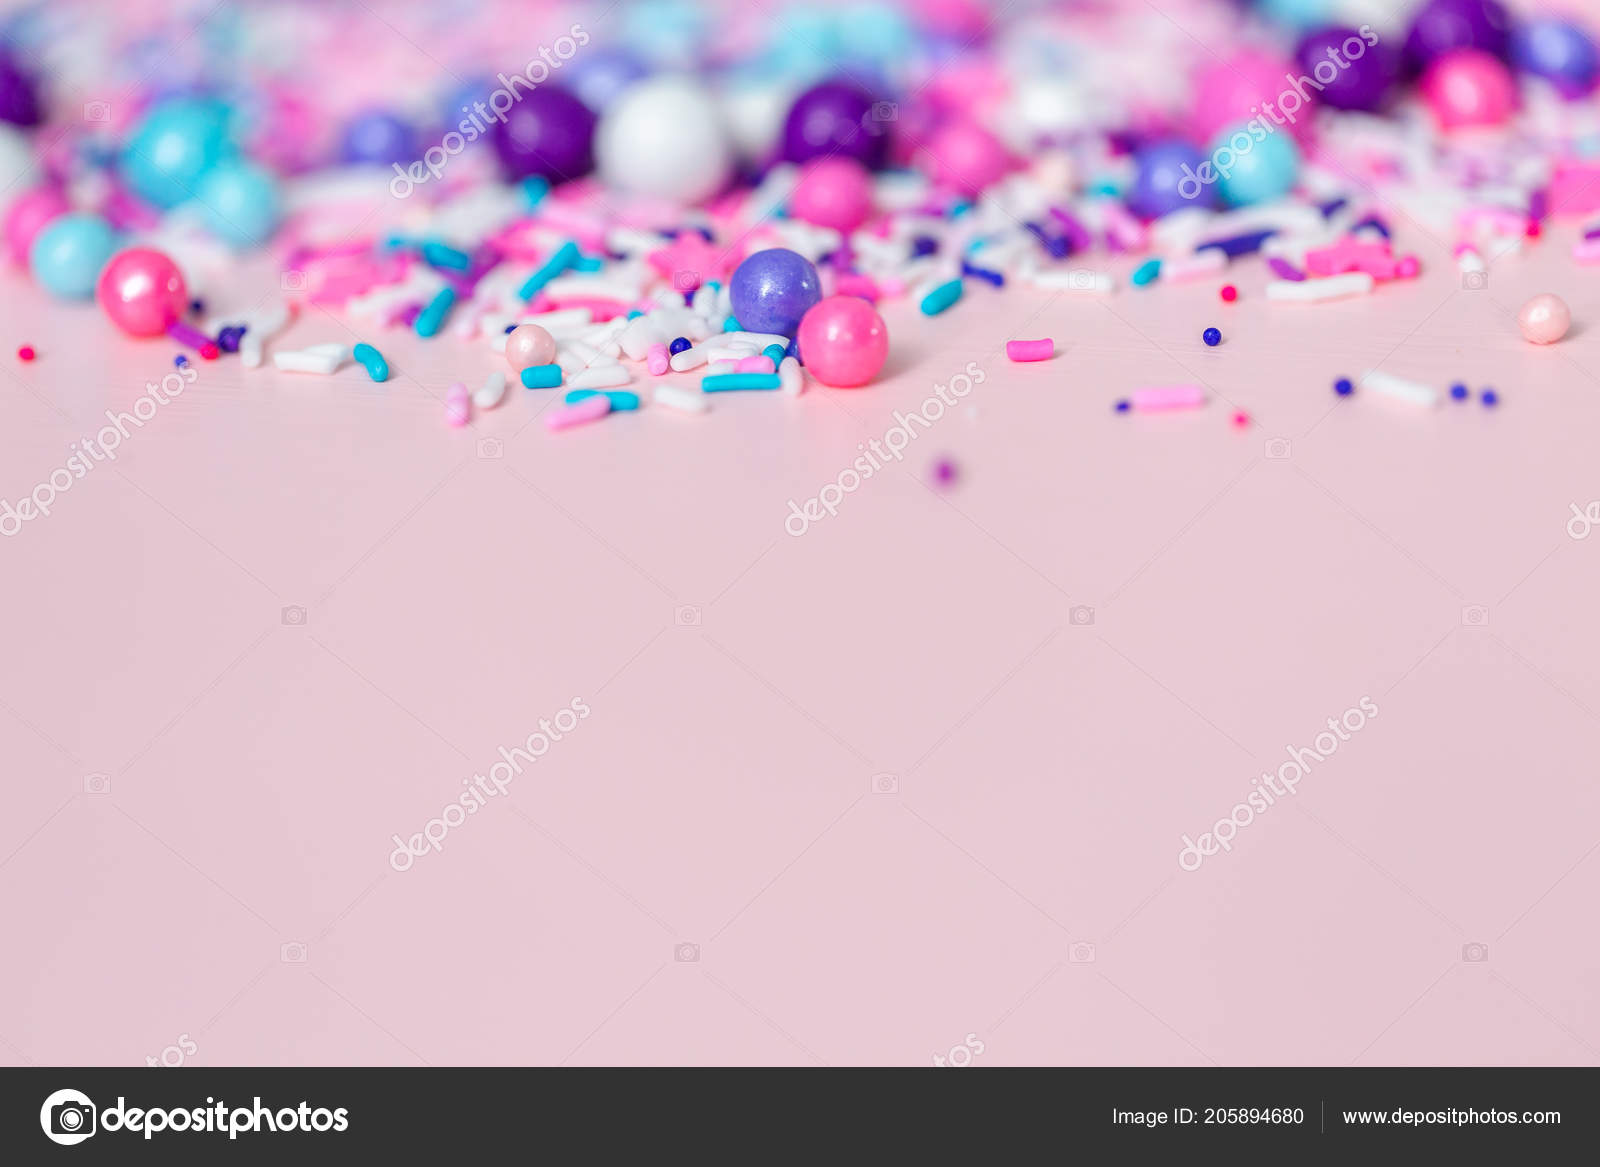 Colorful Purple Sprinkle Blend Pink Background — Stock Photo